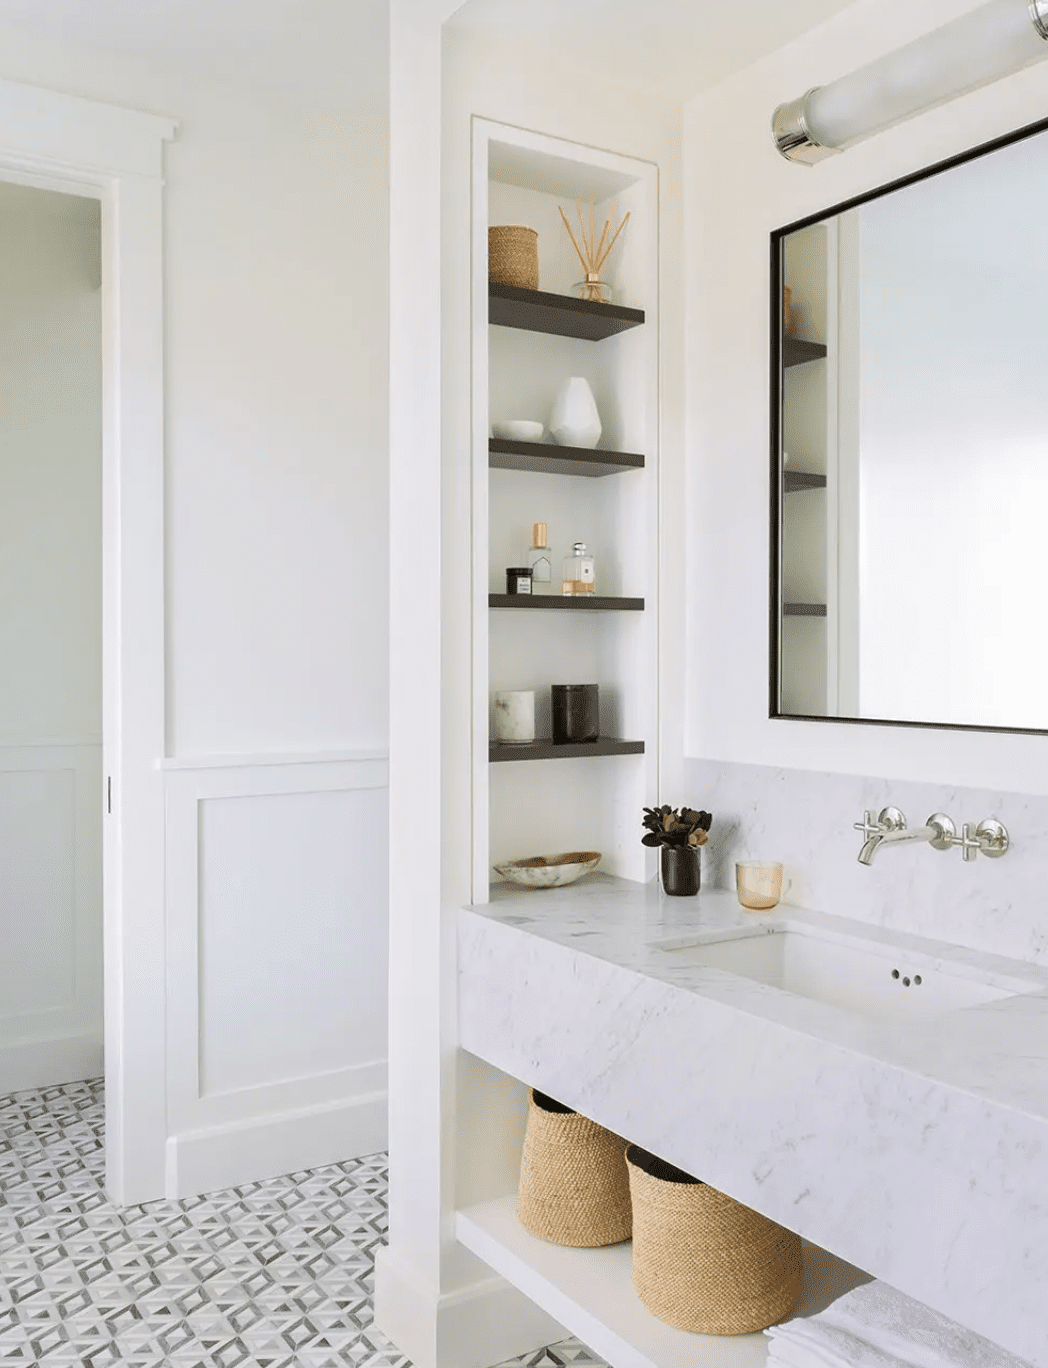 A small primary bathroom with shelves tucked into the wall and below the sink